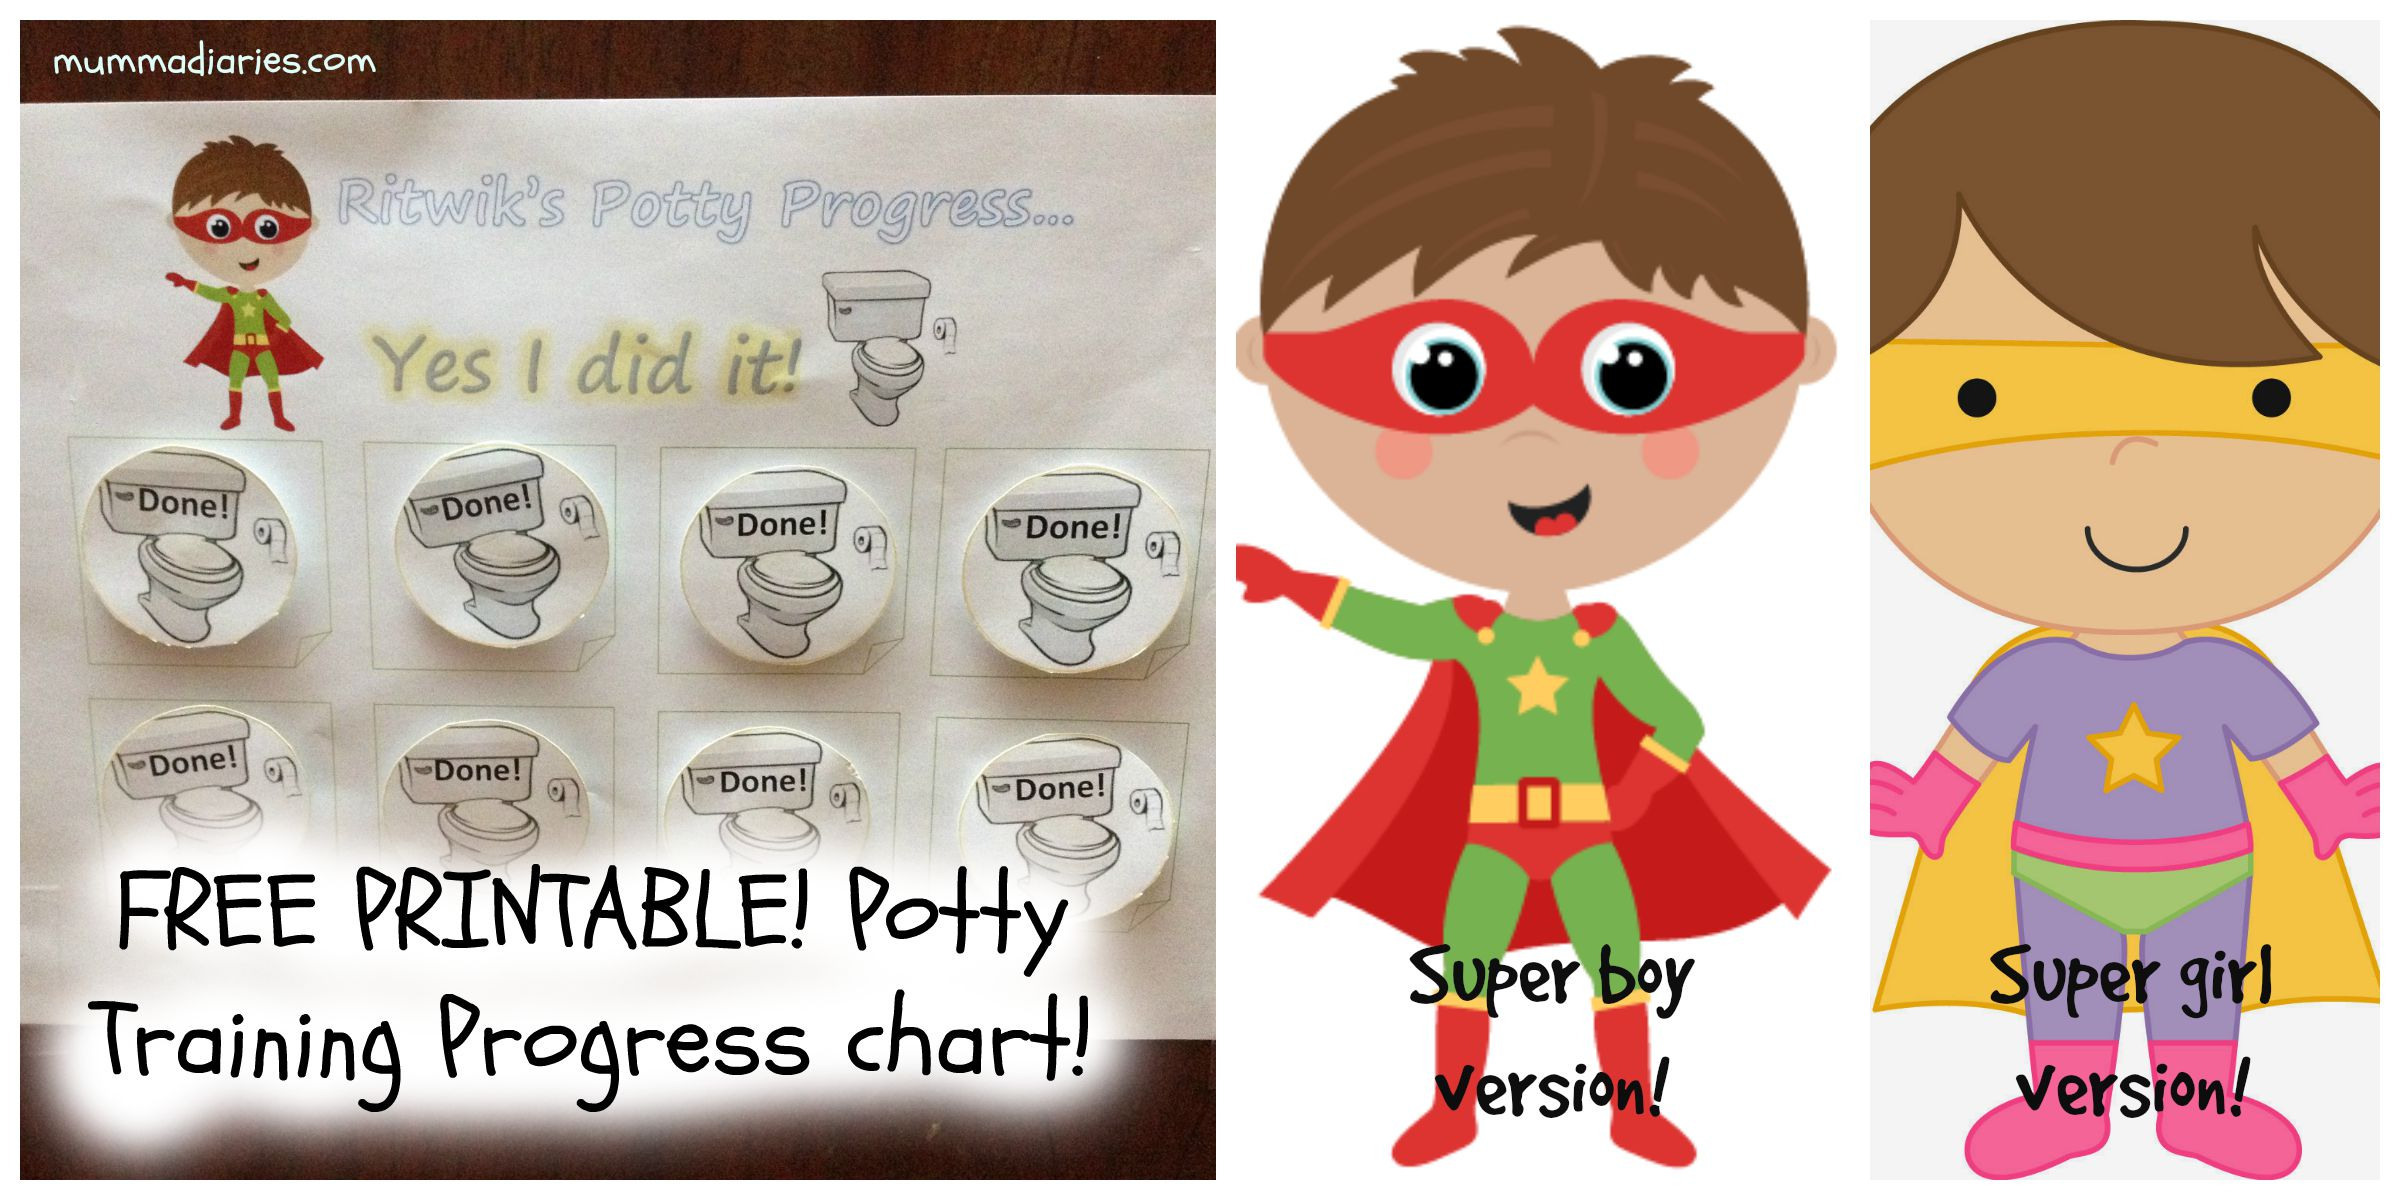 printable potty training progress chart for toddlers potty training progress chart picmonkey collage